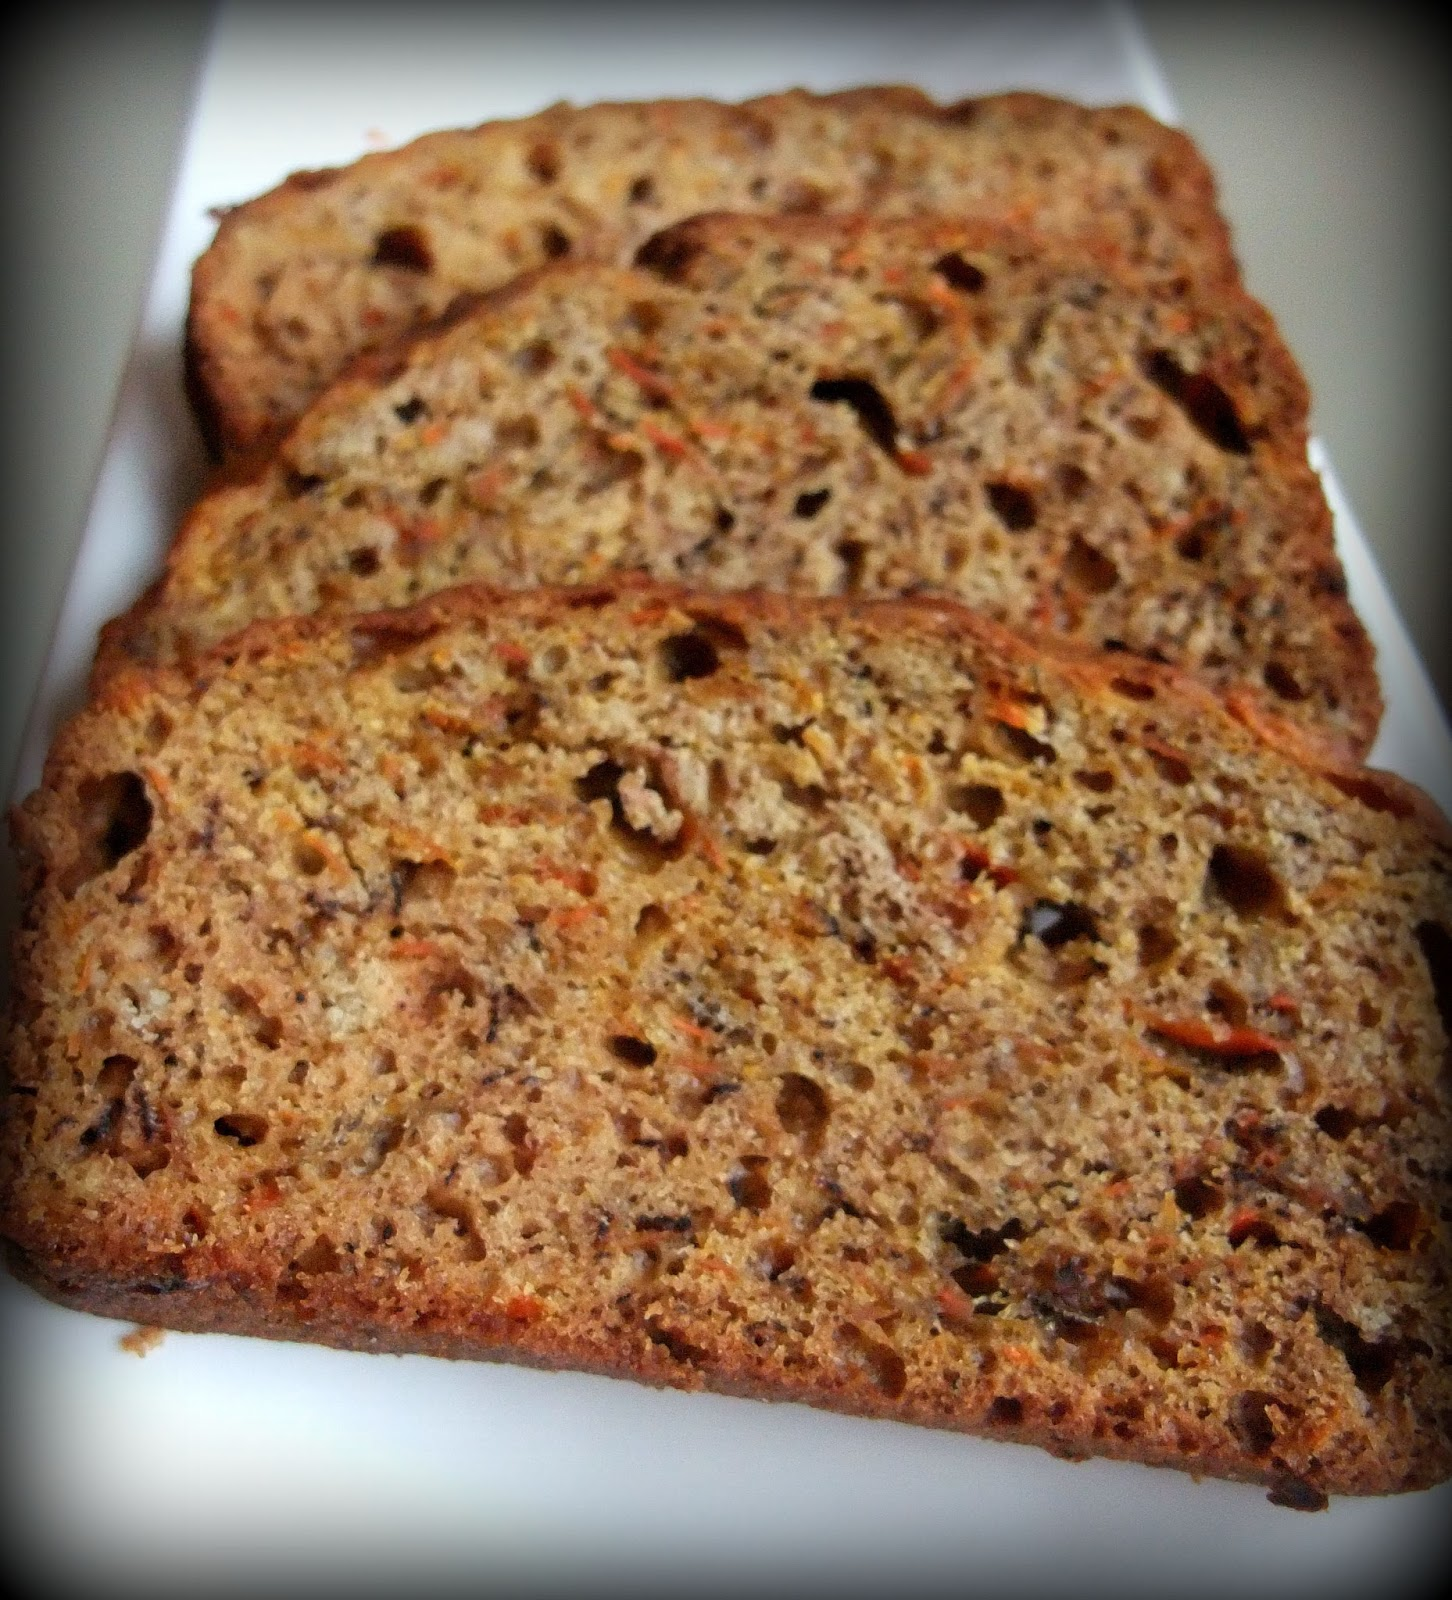 Susan's Savour-It!: Tasty Banana Carrot Cinnamon Bread...